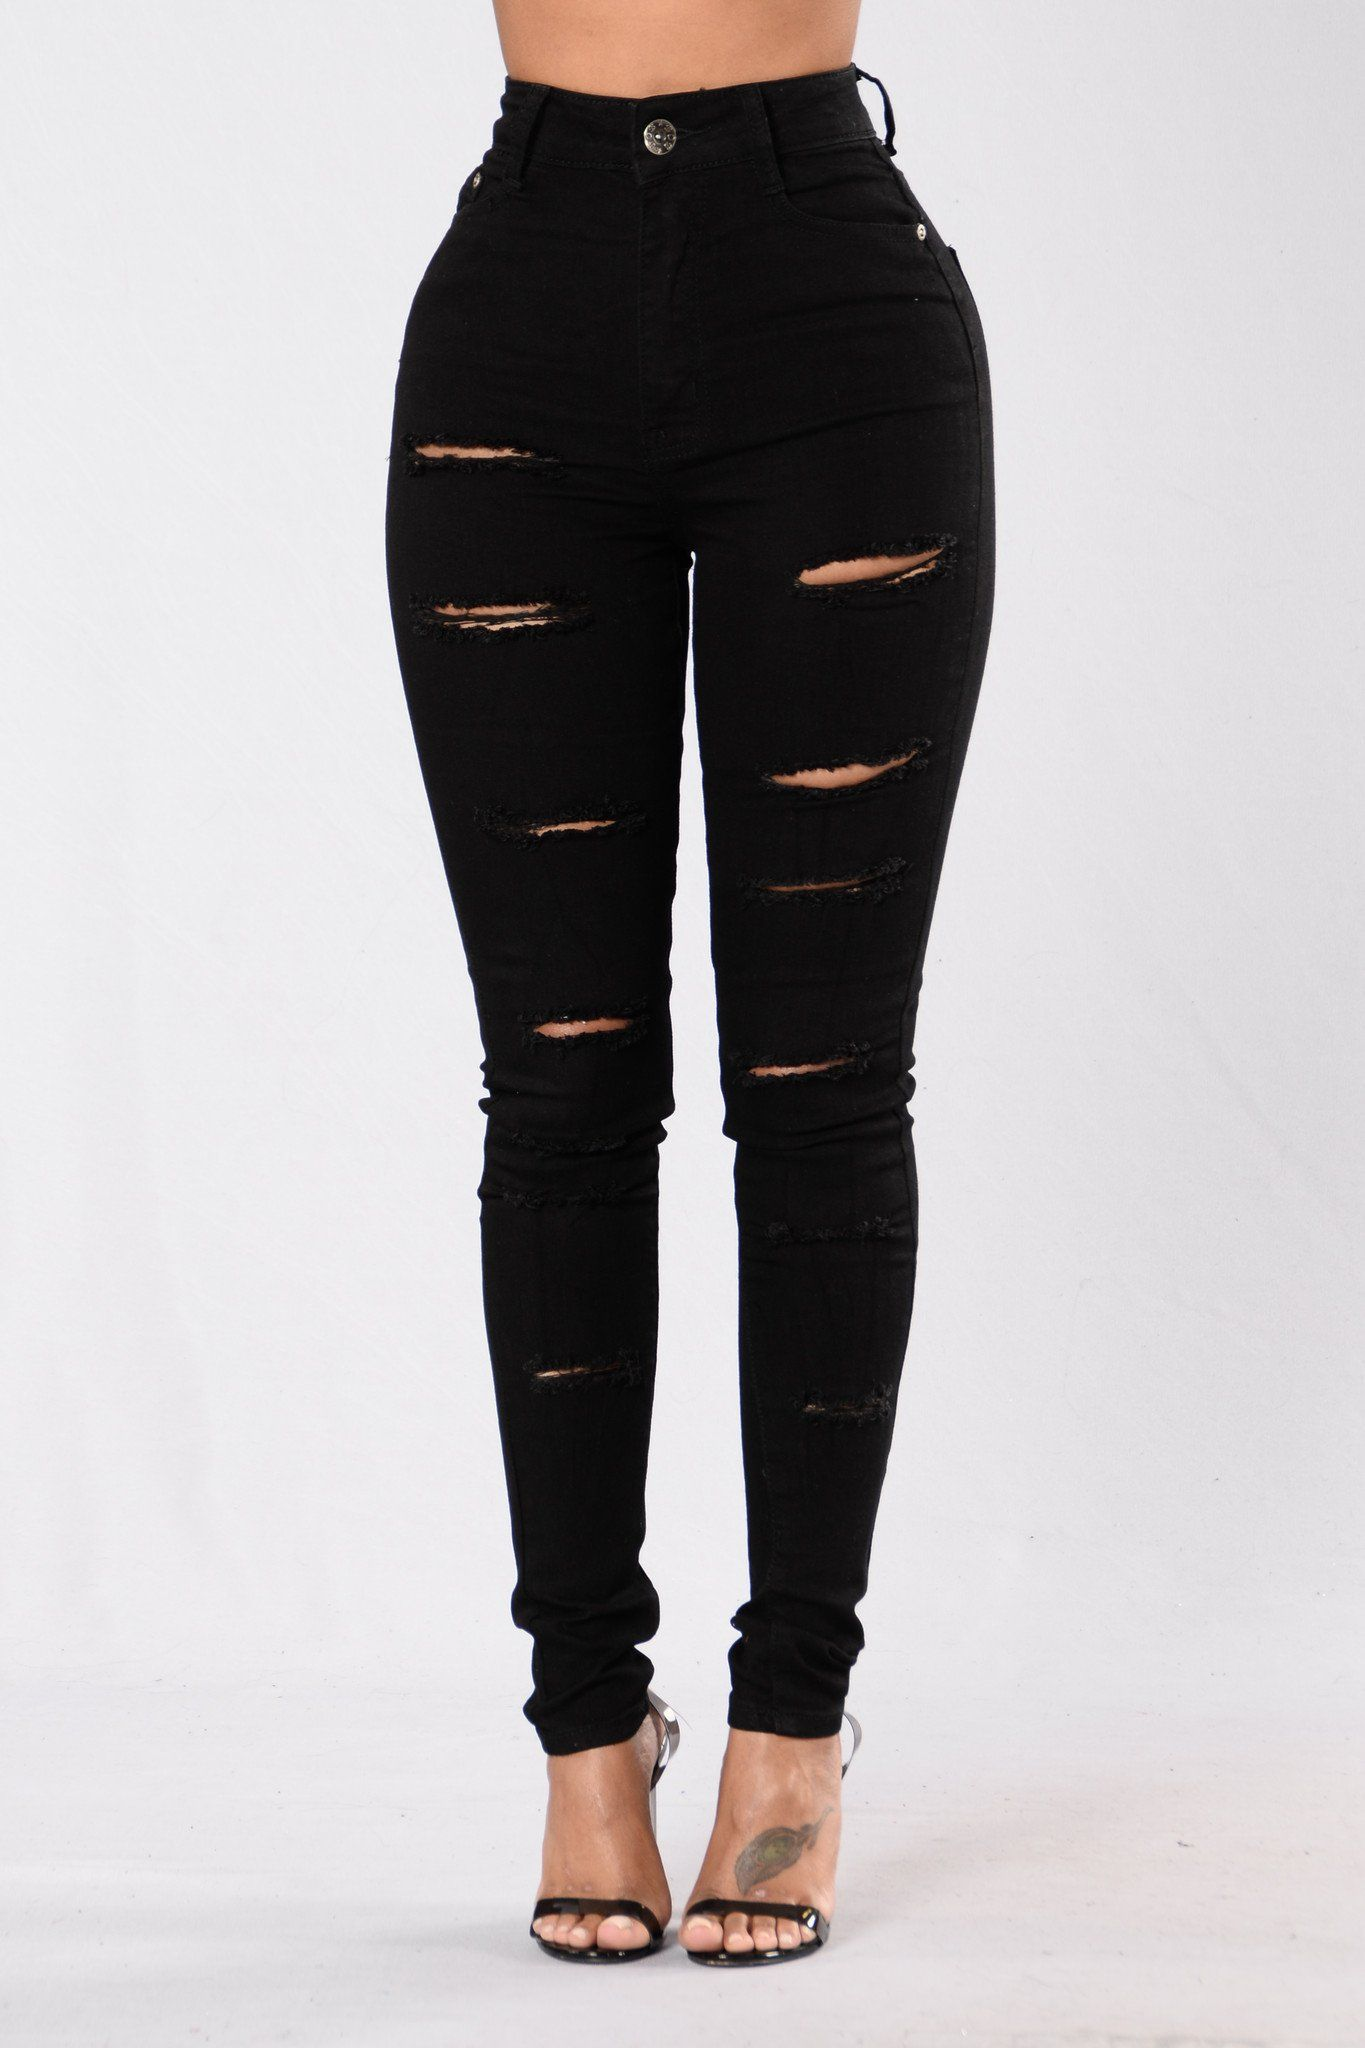 Hug So Tight Jeans Black Super Skinny Ripped Jeans Jeans Outfit Women Black Jeans